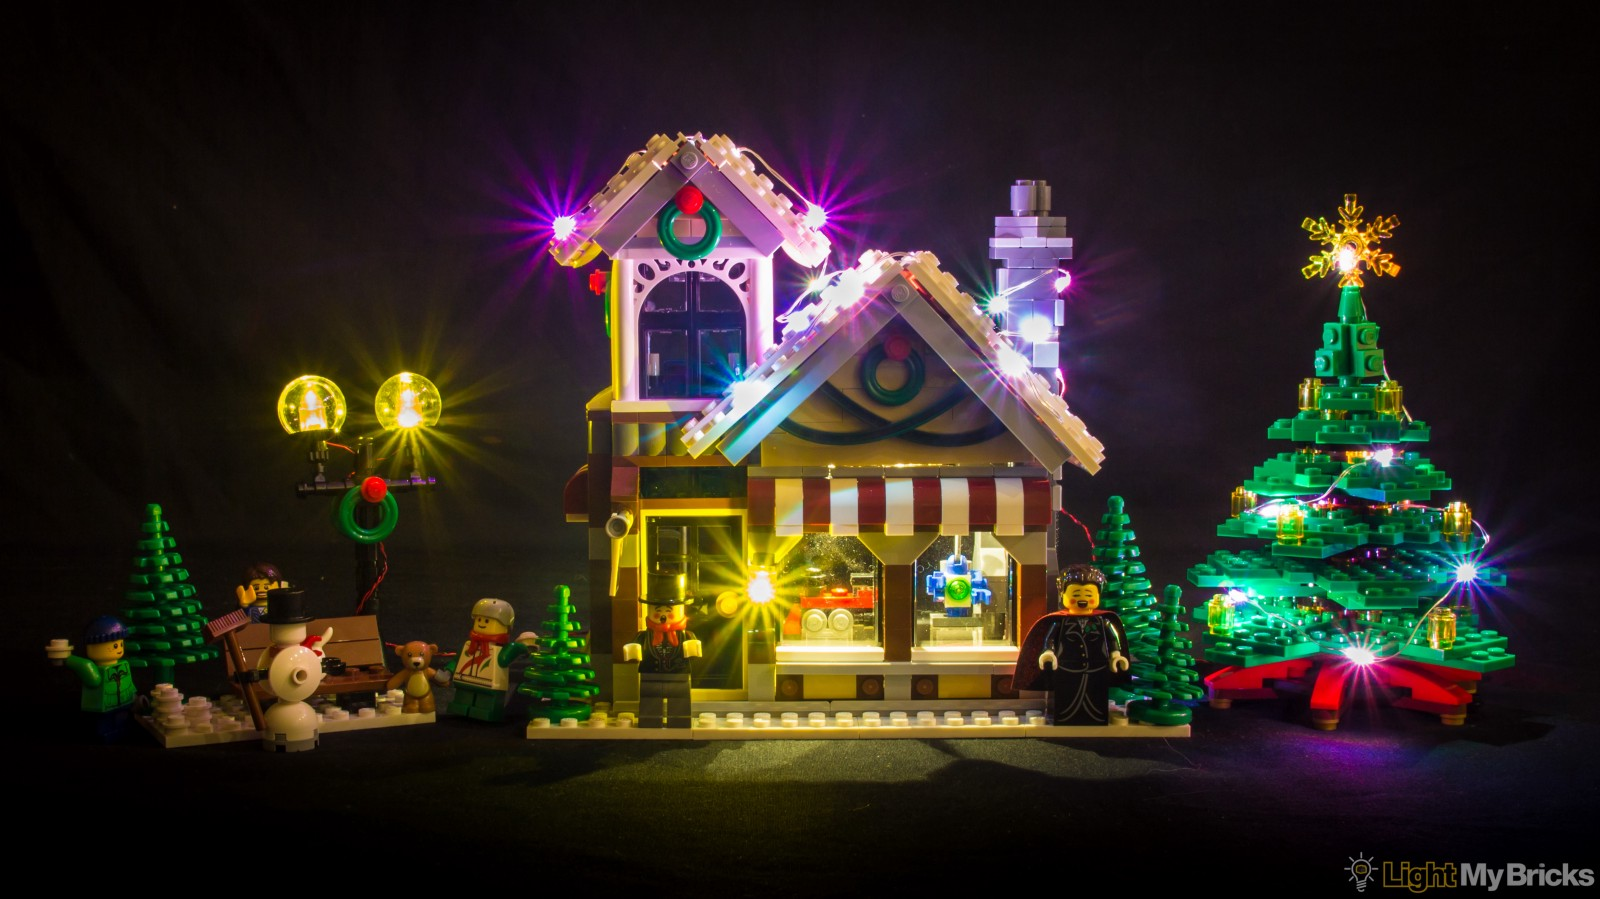 light my bricks winter toy shop led lighting kit